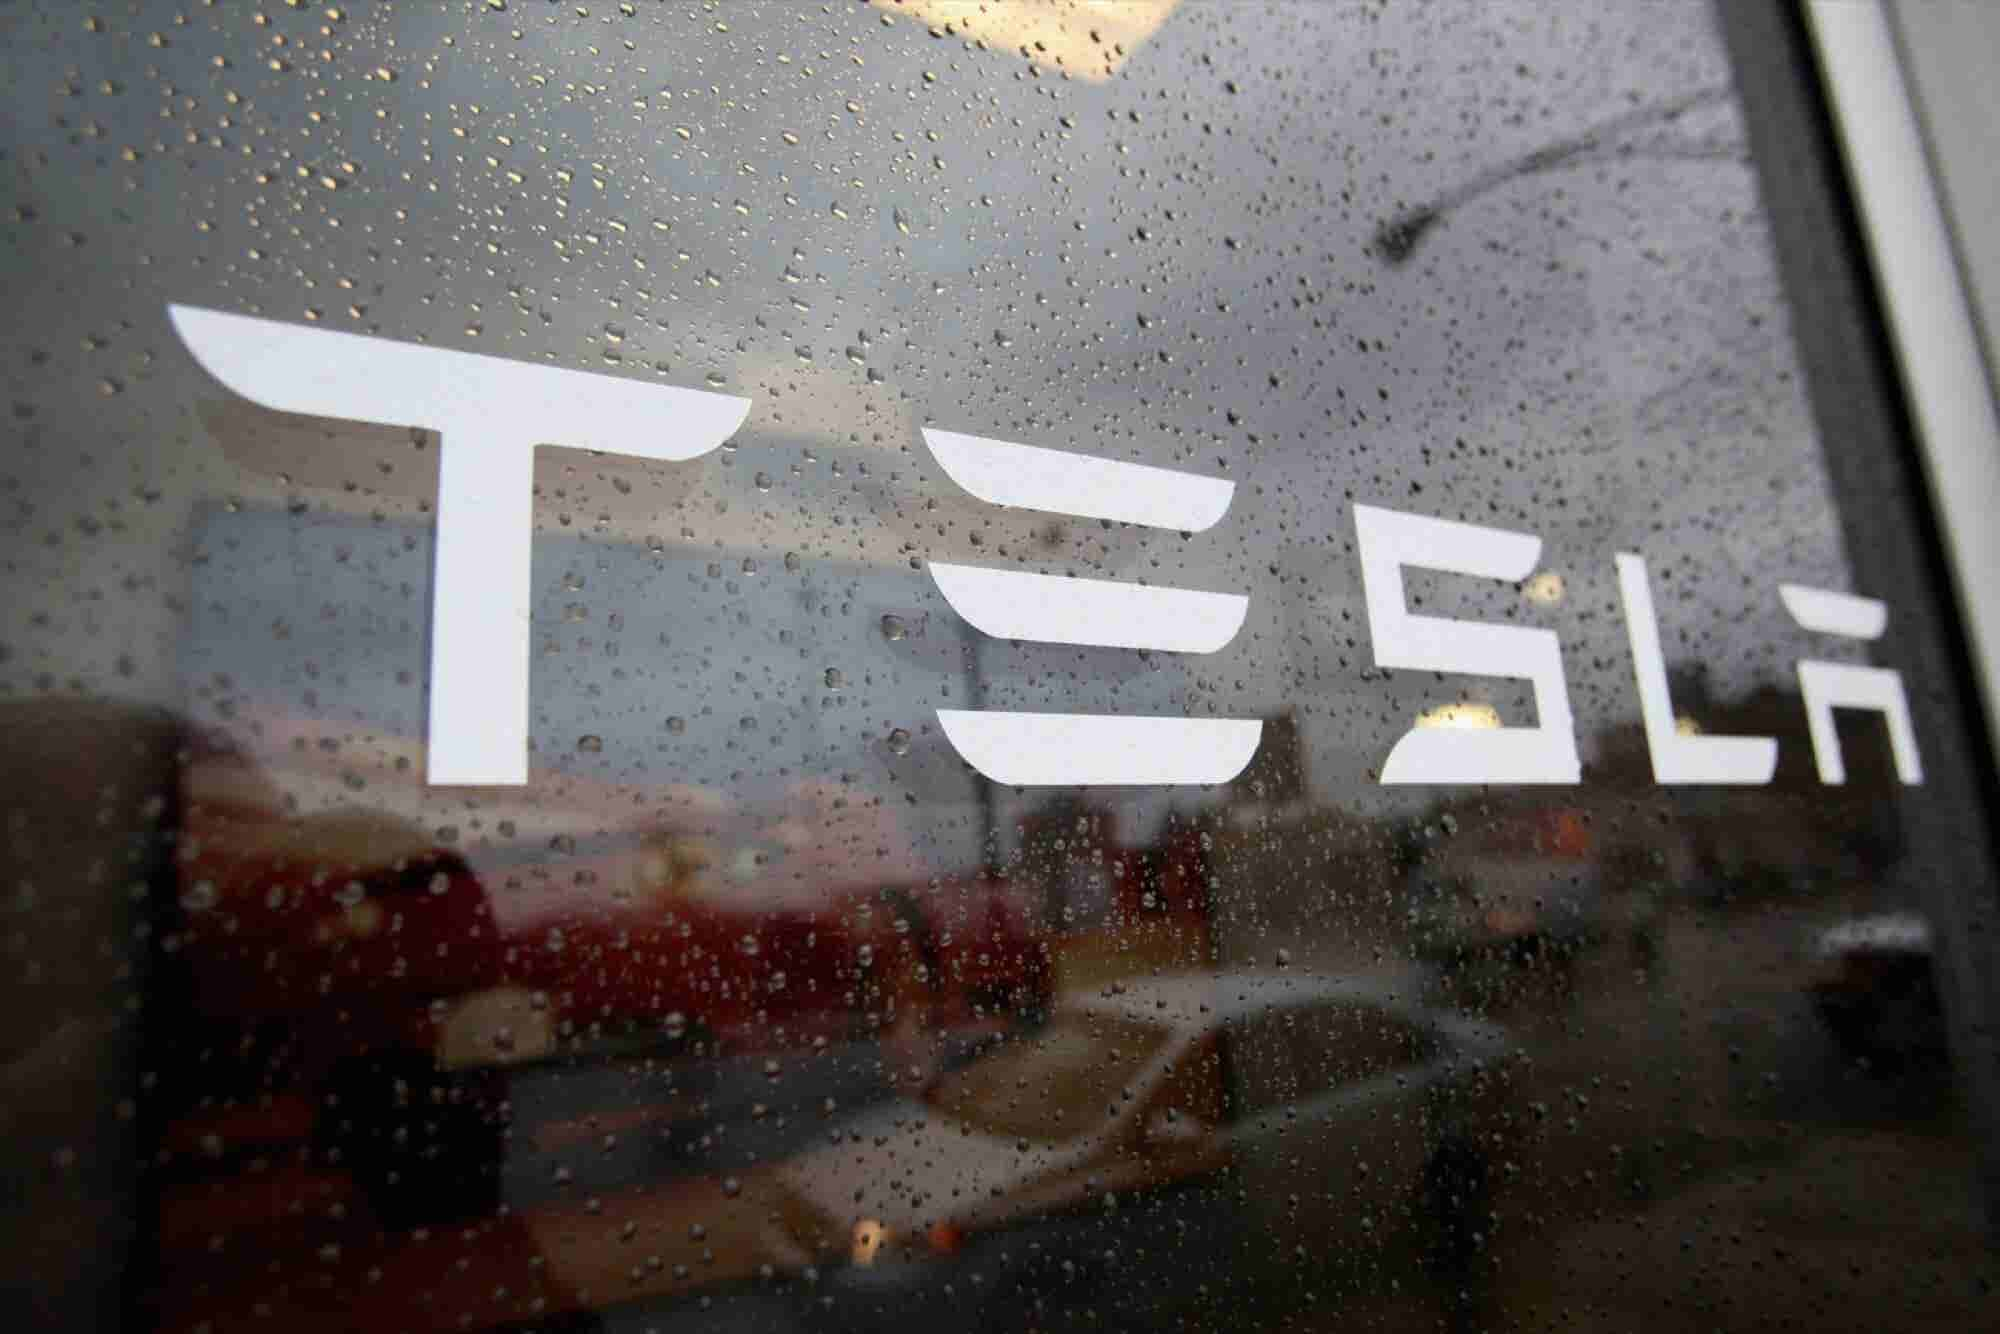 Under Tesla's Wing, SolarCity's Future Remains Uncertain